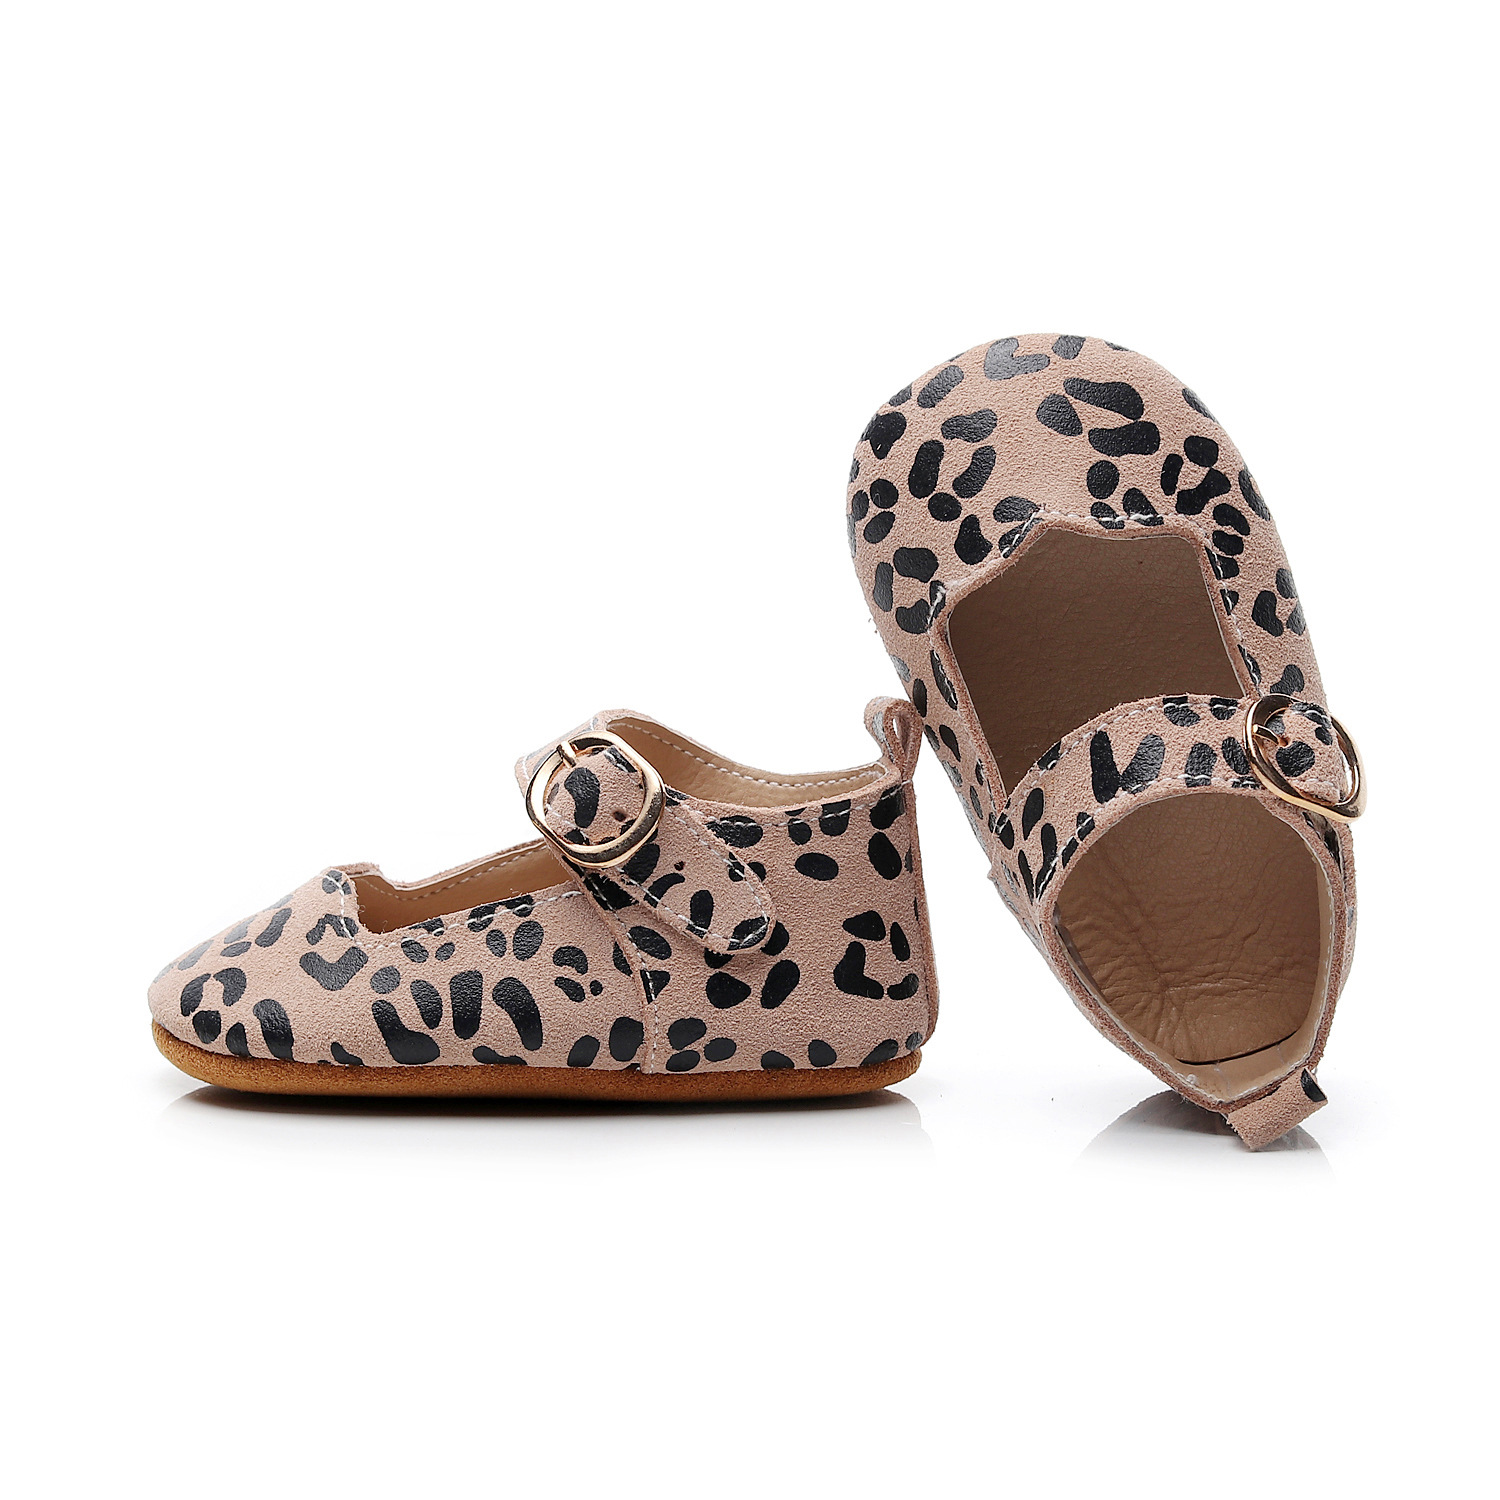 Spring New Designs Genuine Leather Baby Moccasins Girls Shoes Leopard Mary Jane Flats Princess Shallow Toddler First Walkers